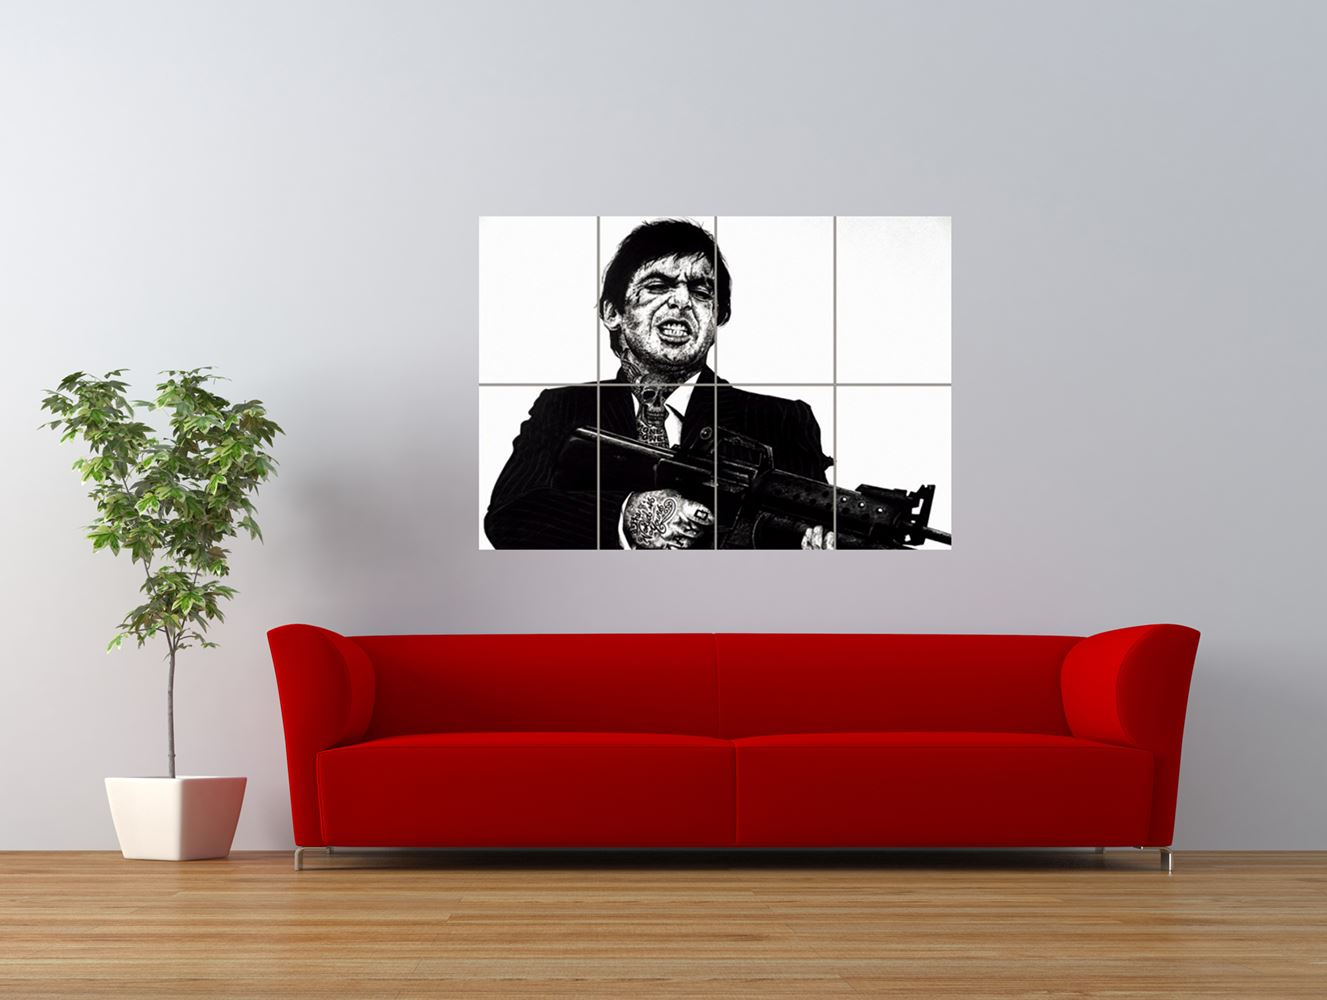 wm scarface al pacino unique tattoo icon giant art print panel poster nor0578 ebay. Black Bedroom Furniture Sets. Home Design Ideas